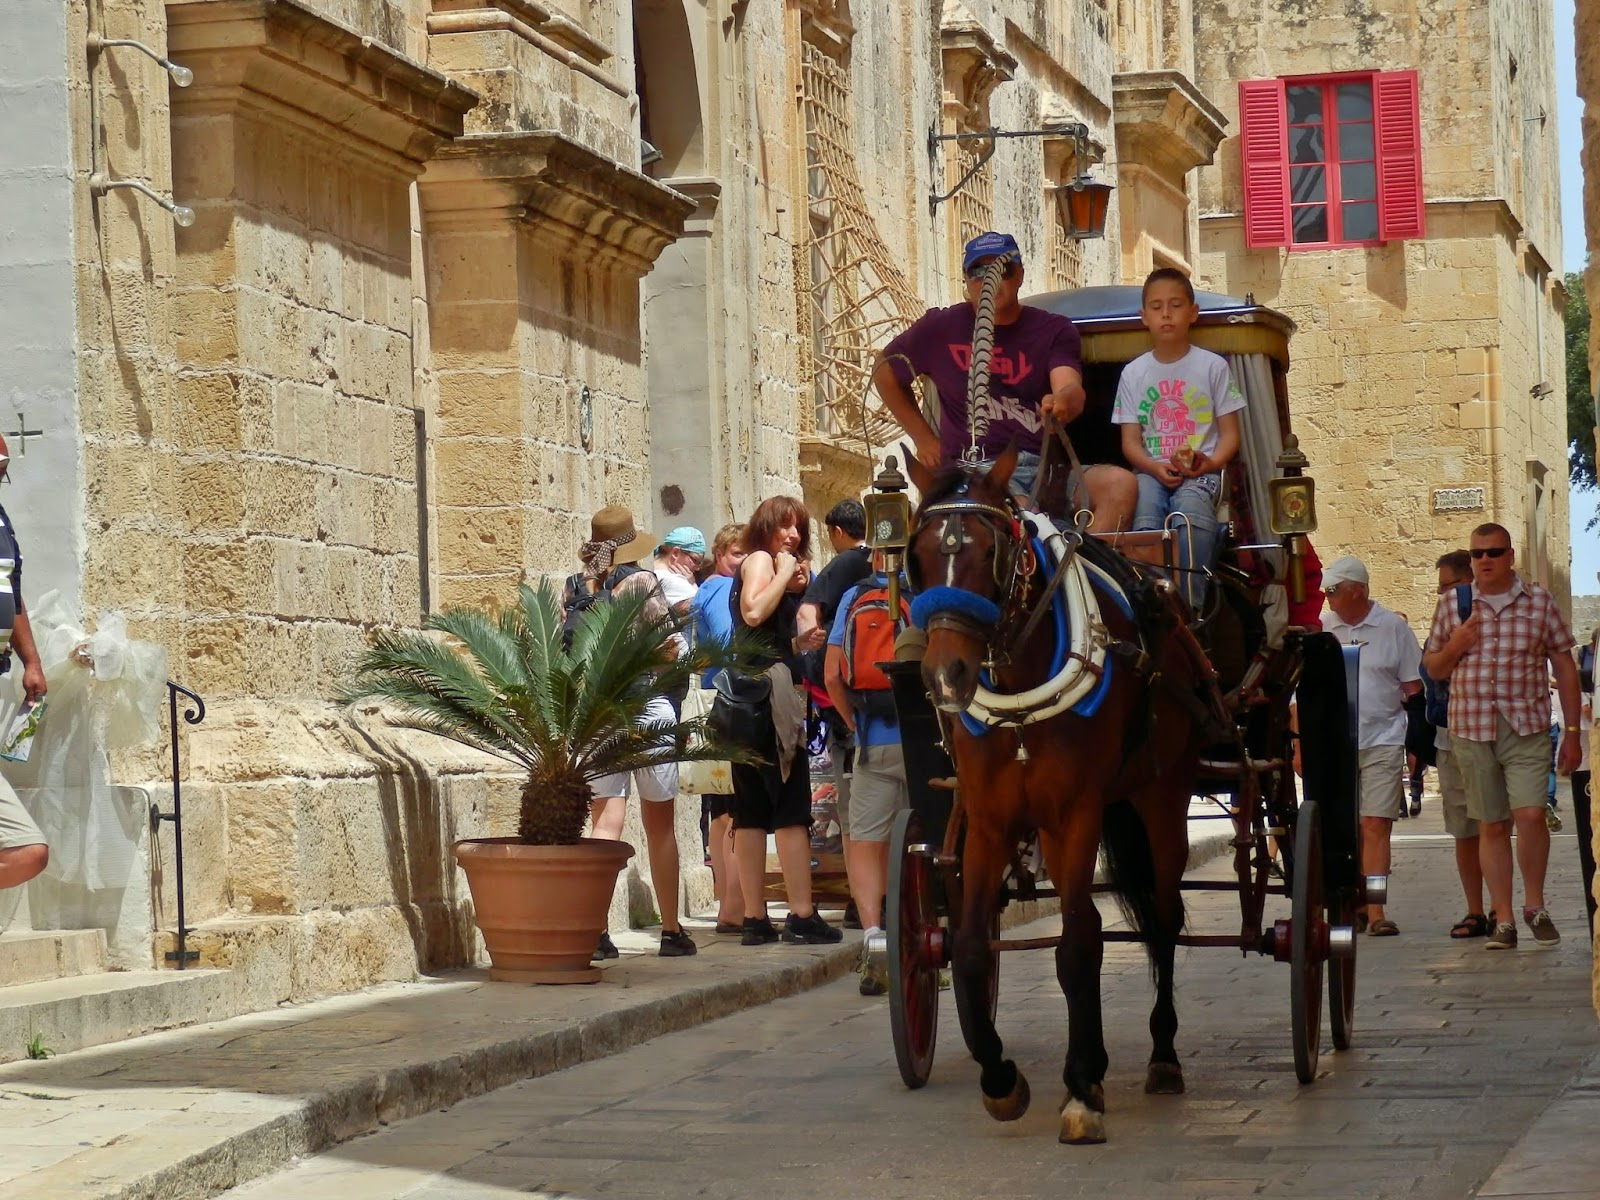 Horse and cart in Mdina Malta